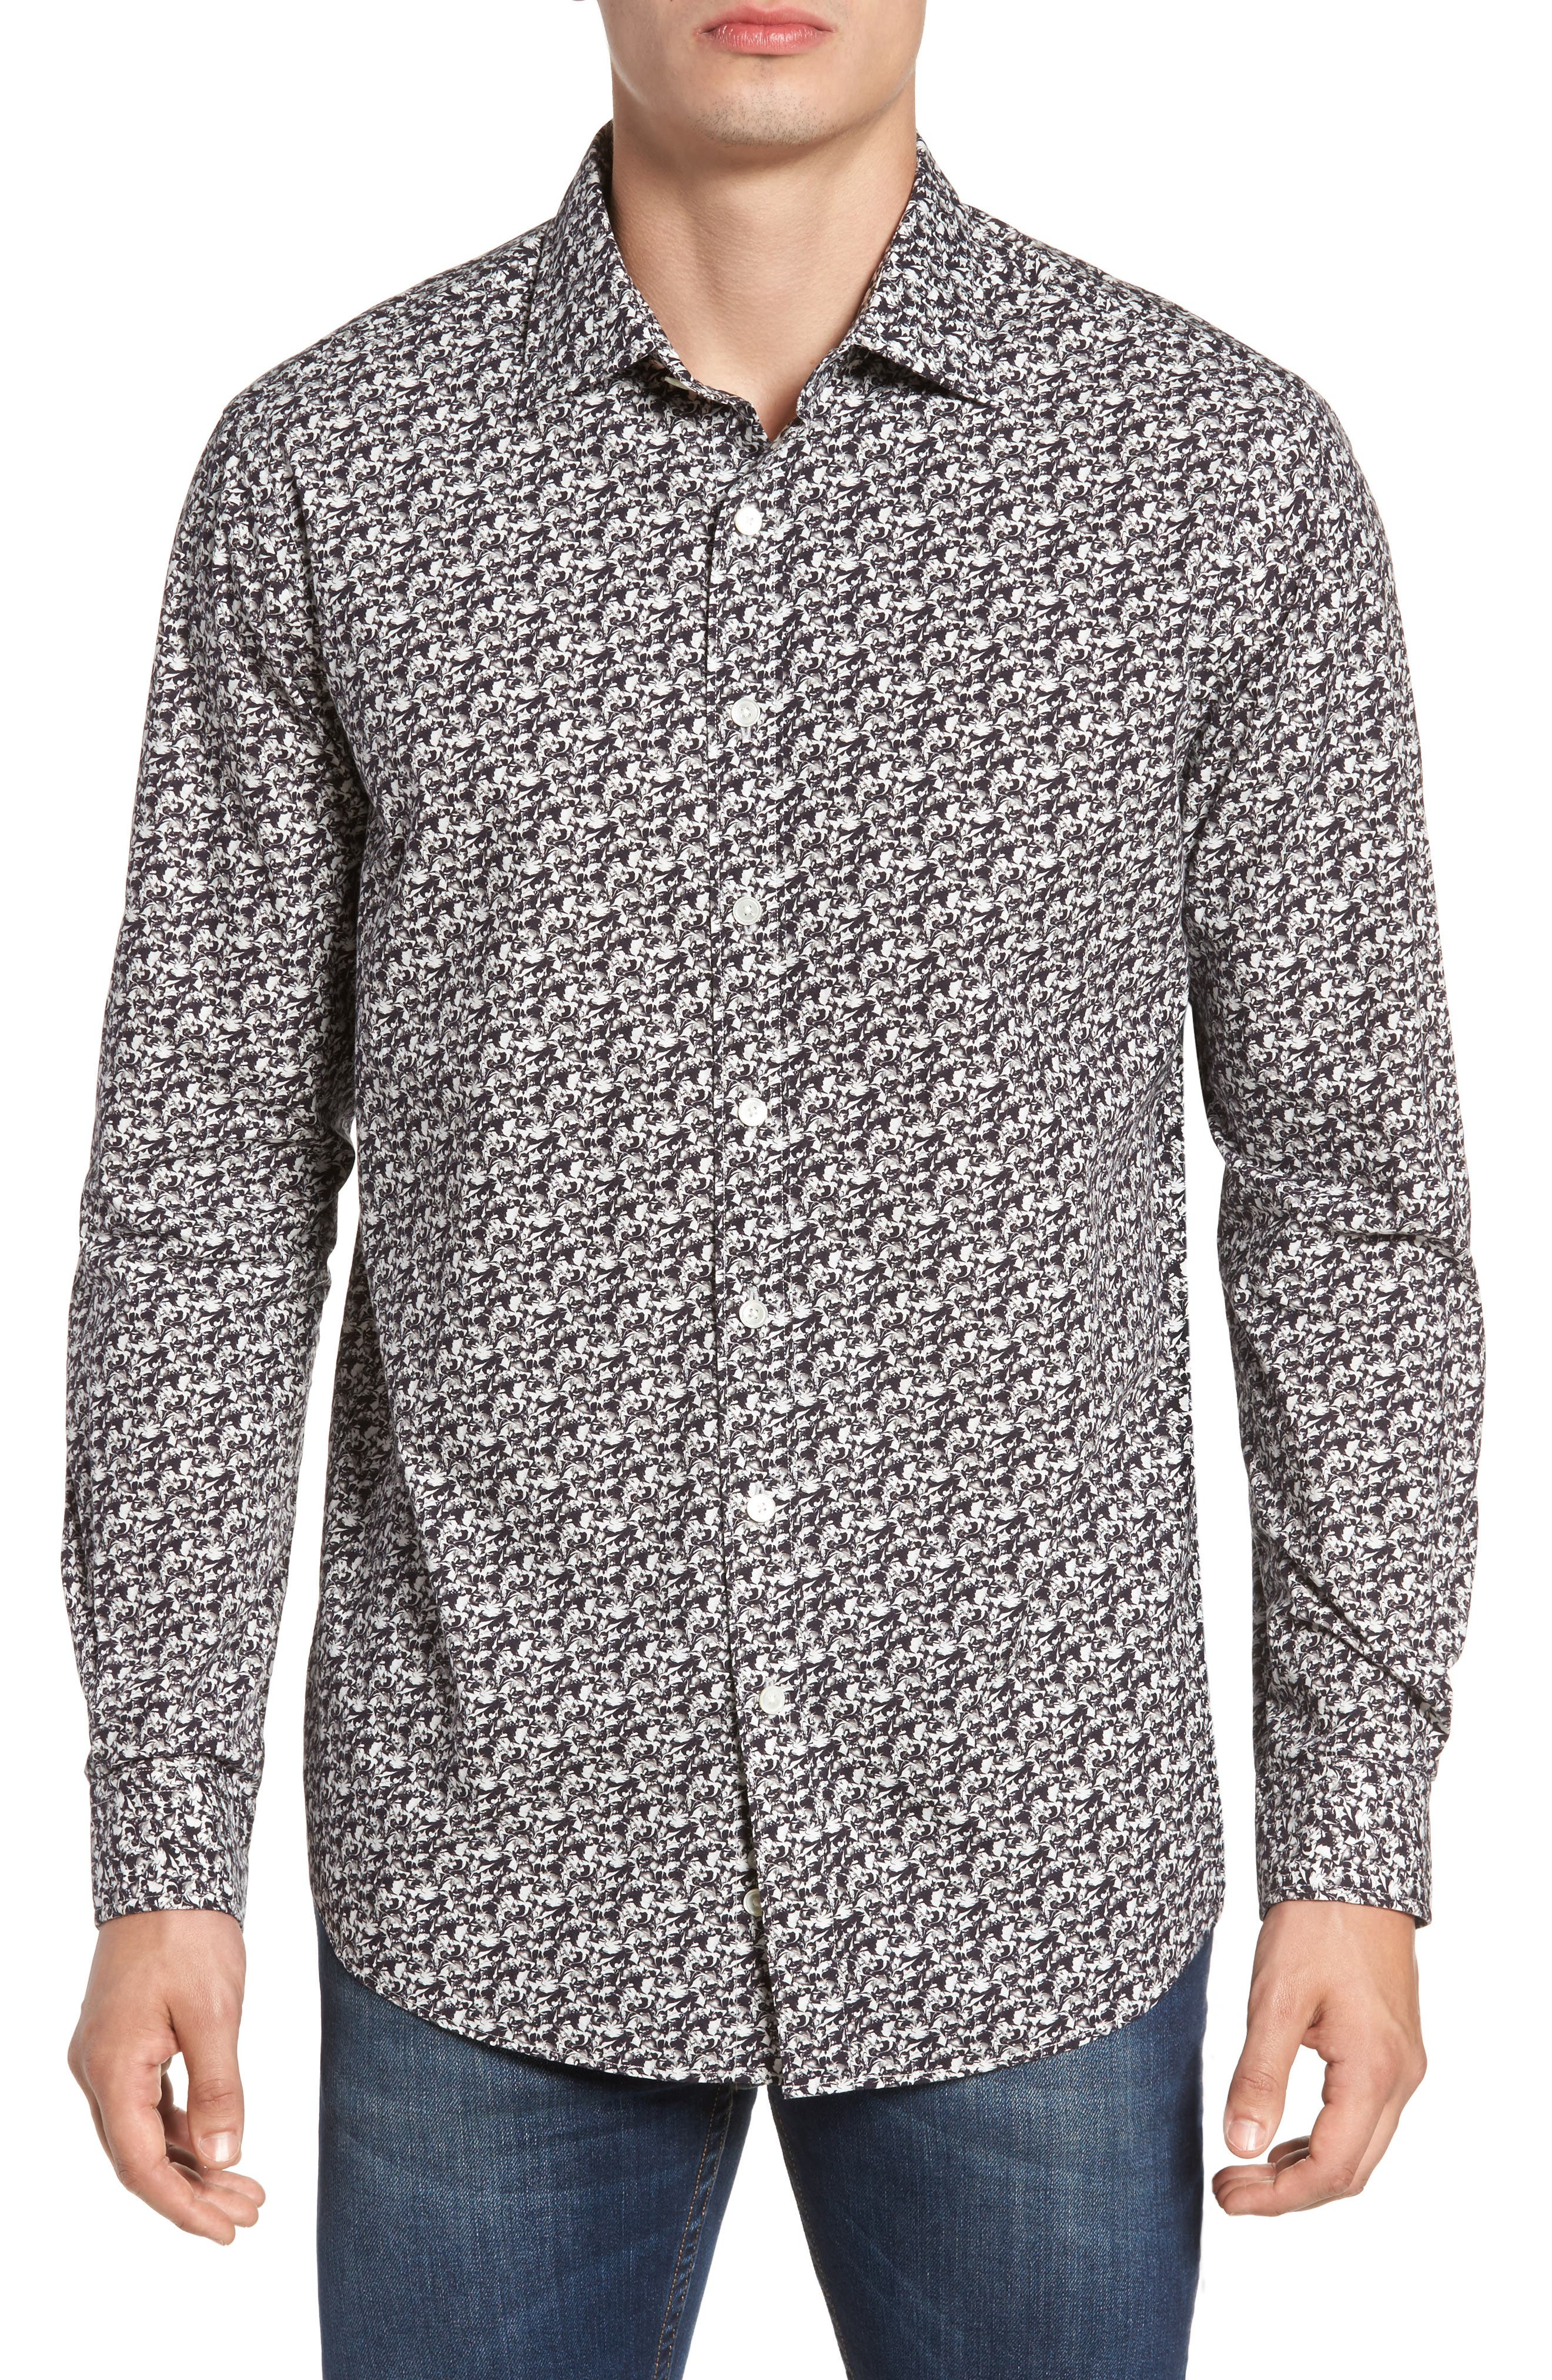 Bucklands Beach Print Sport Shirt,                             Main thumbnail 1, color,